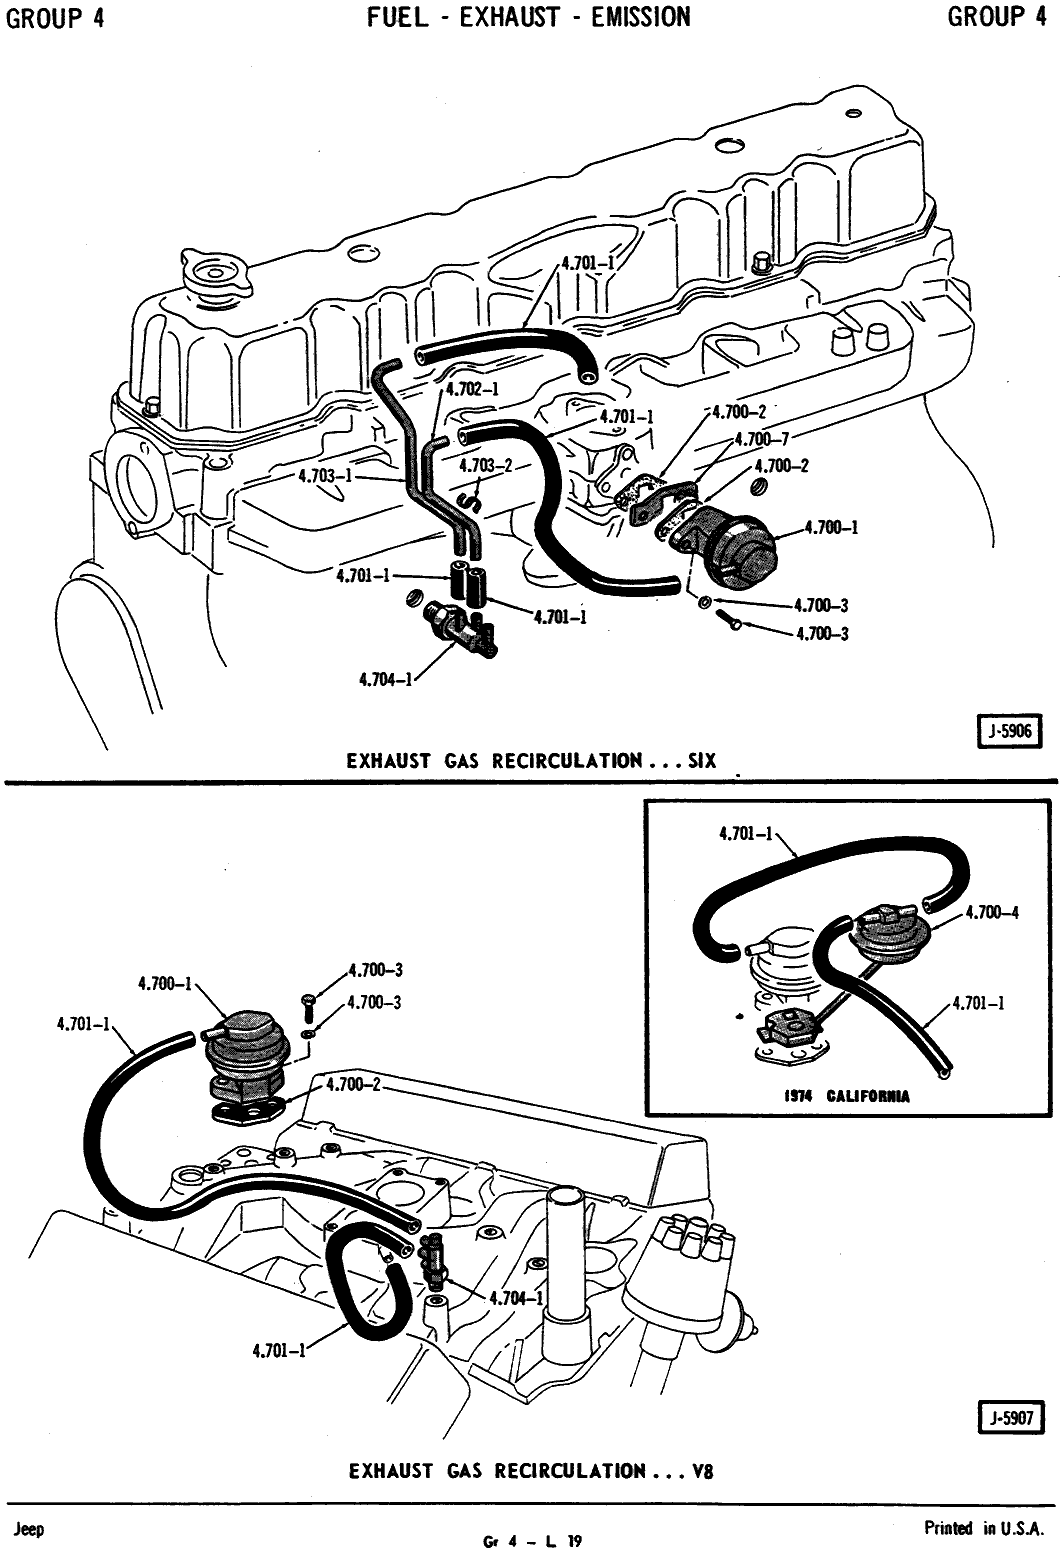 hight resolution of 1997 jeep wrangler fuel system diagram wiring diagram portal jeep fuel line diagrams cj5 fuel system diagram